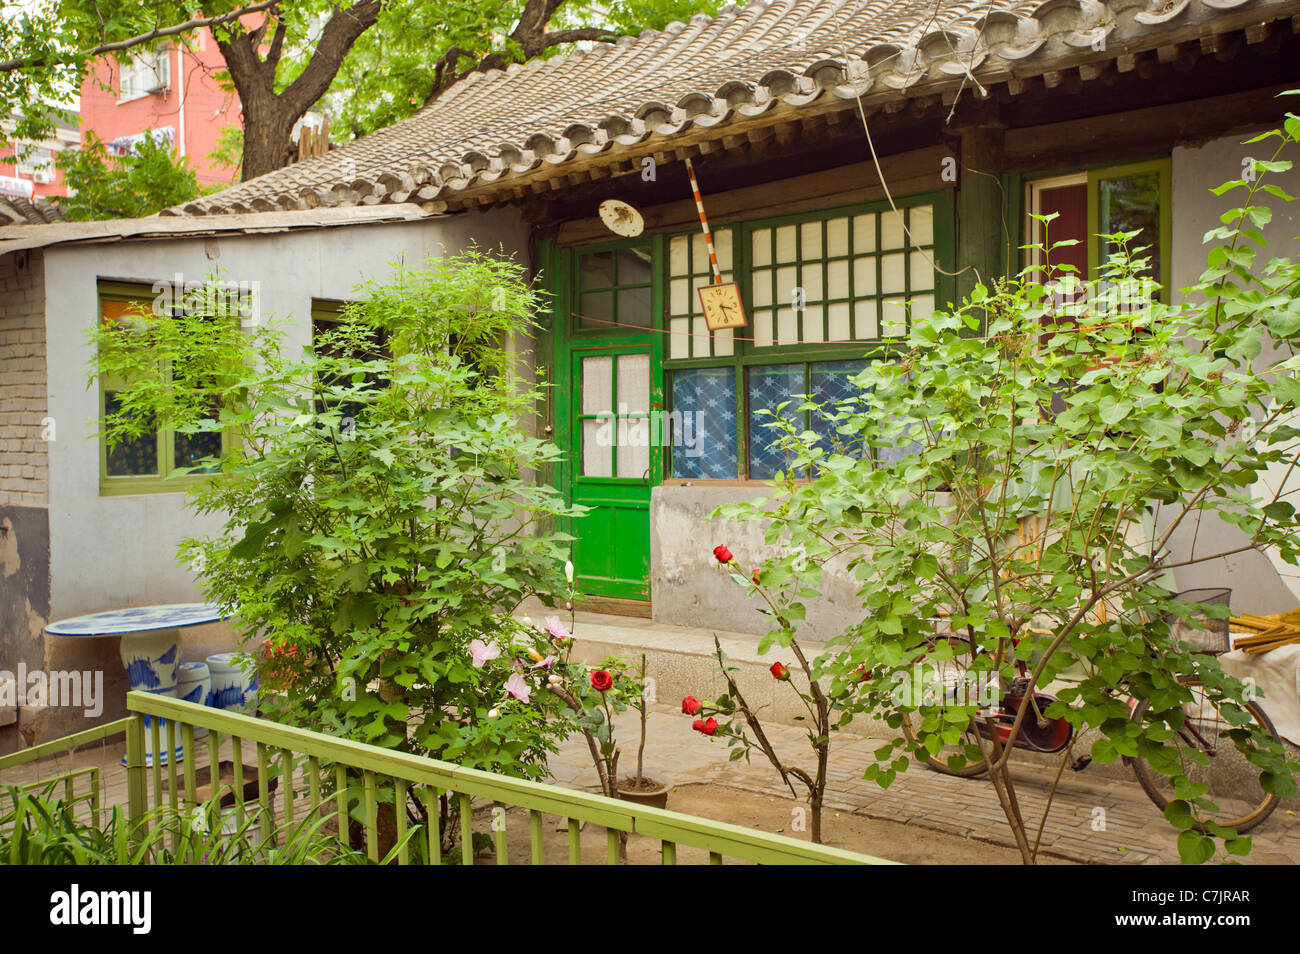 ancient part of BeijingHutong Old City of Peking inner courts typically typical living room traditional old - Stock Image